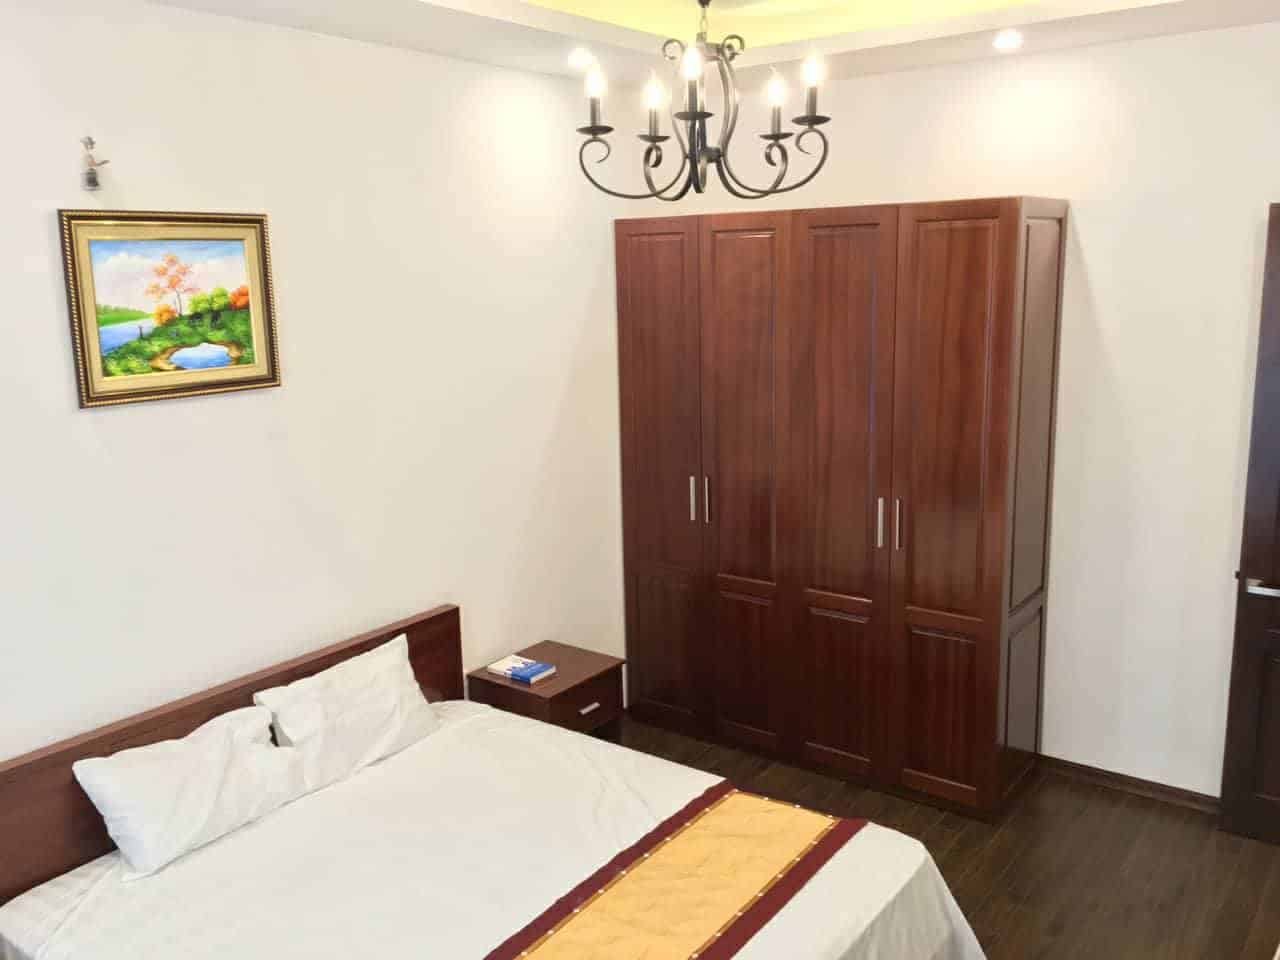 Luxury one bedroom apartment for rent in ba dinh district hanoi city for Apartments for rent 1 bedroom 1 bath